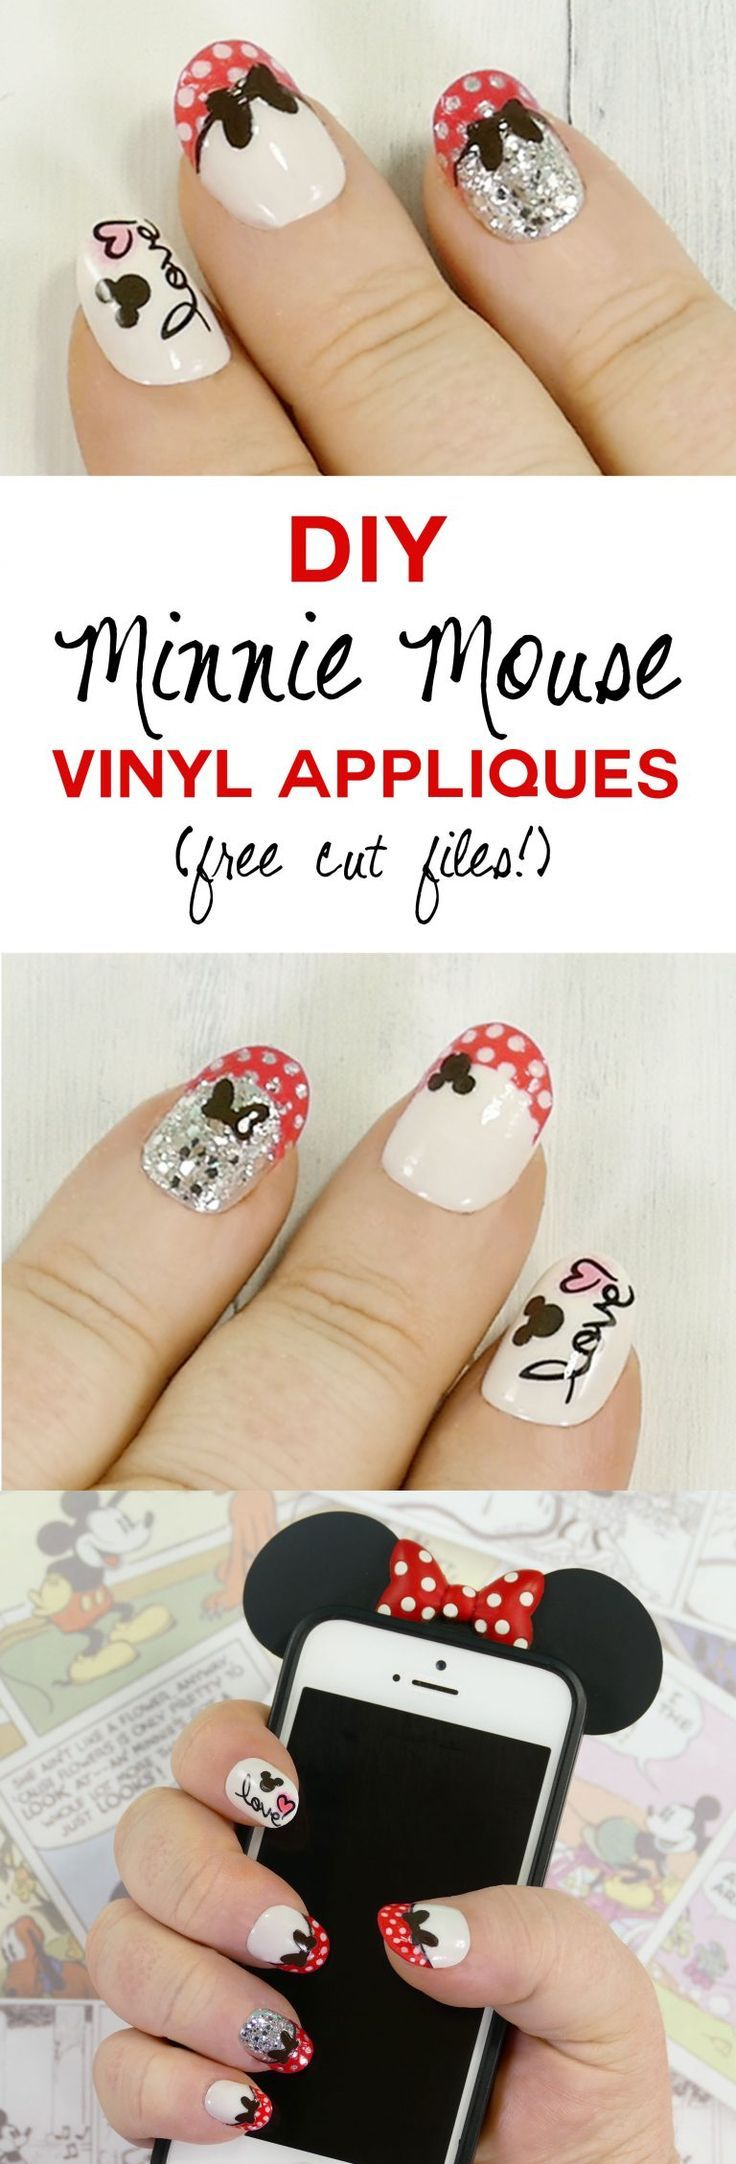 DIY Minnie Mouse Nail Tips - Vinyl Appliques Made on the Cricut ...